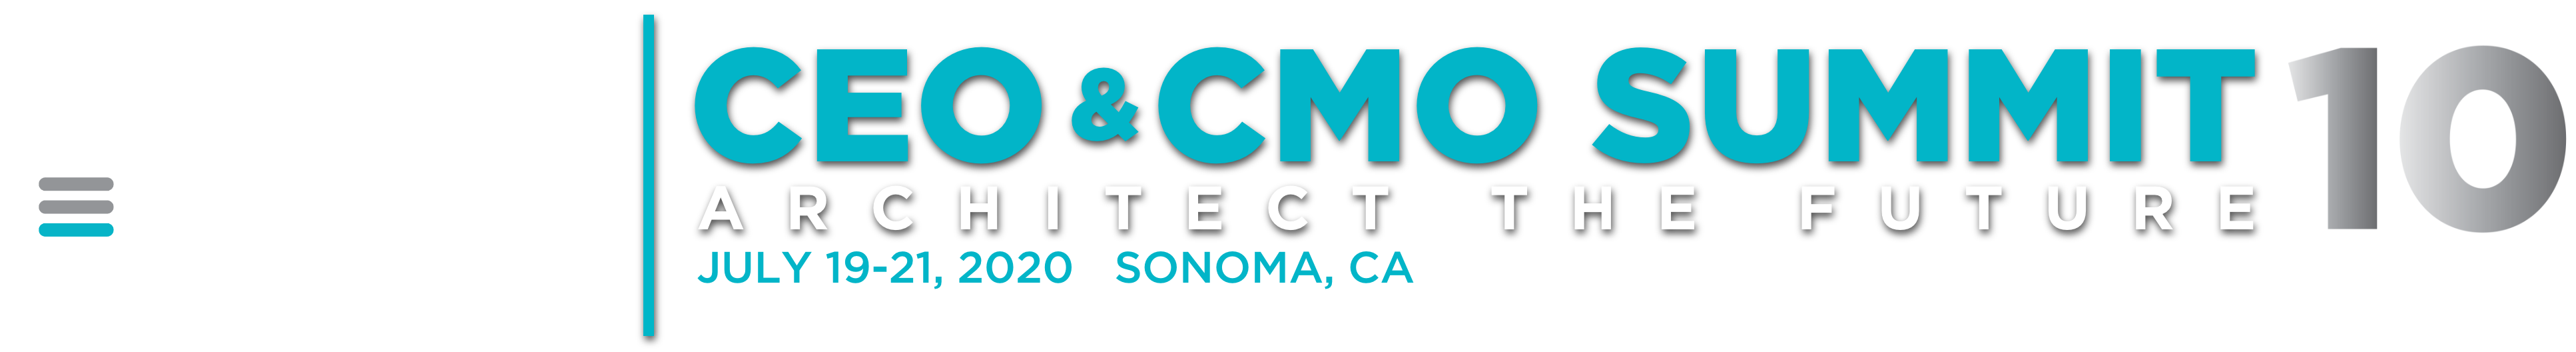 MMA CEO & CMO Summit 10 logo